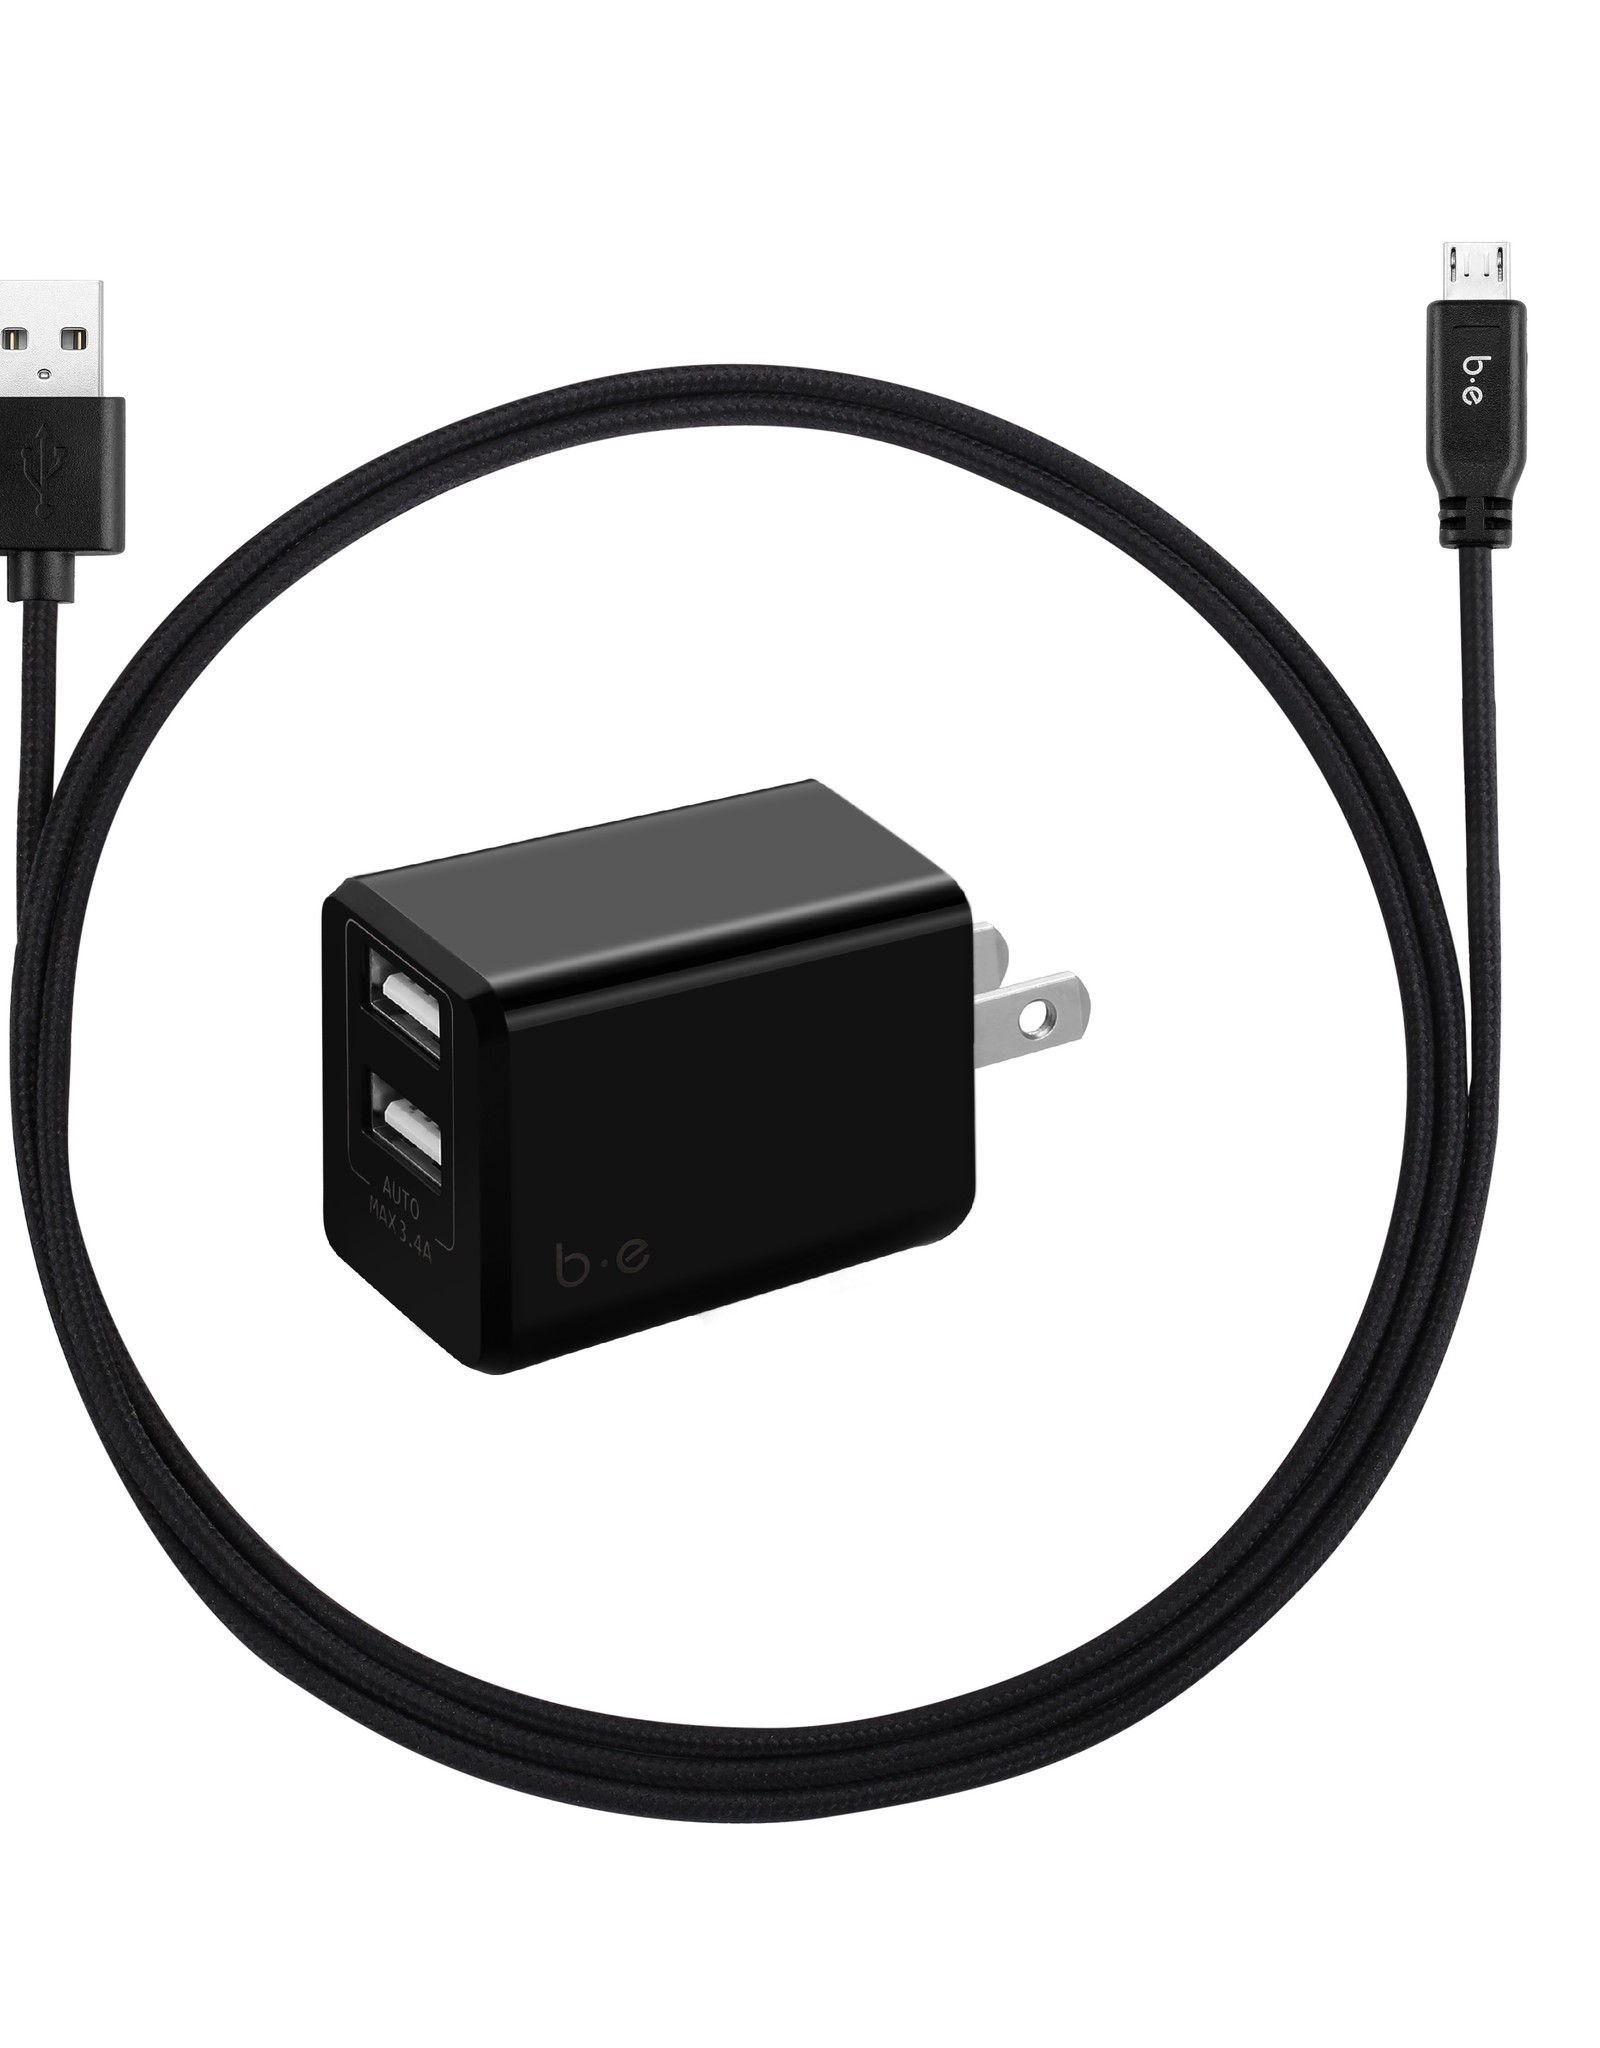 Blu Element Blu Element | Wall Charger Dual USB 3.4A w/ Micro USB Cable Black 101-1385